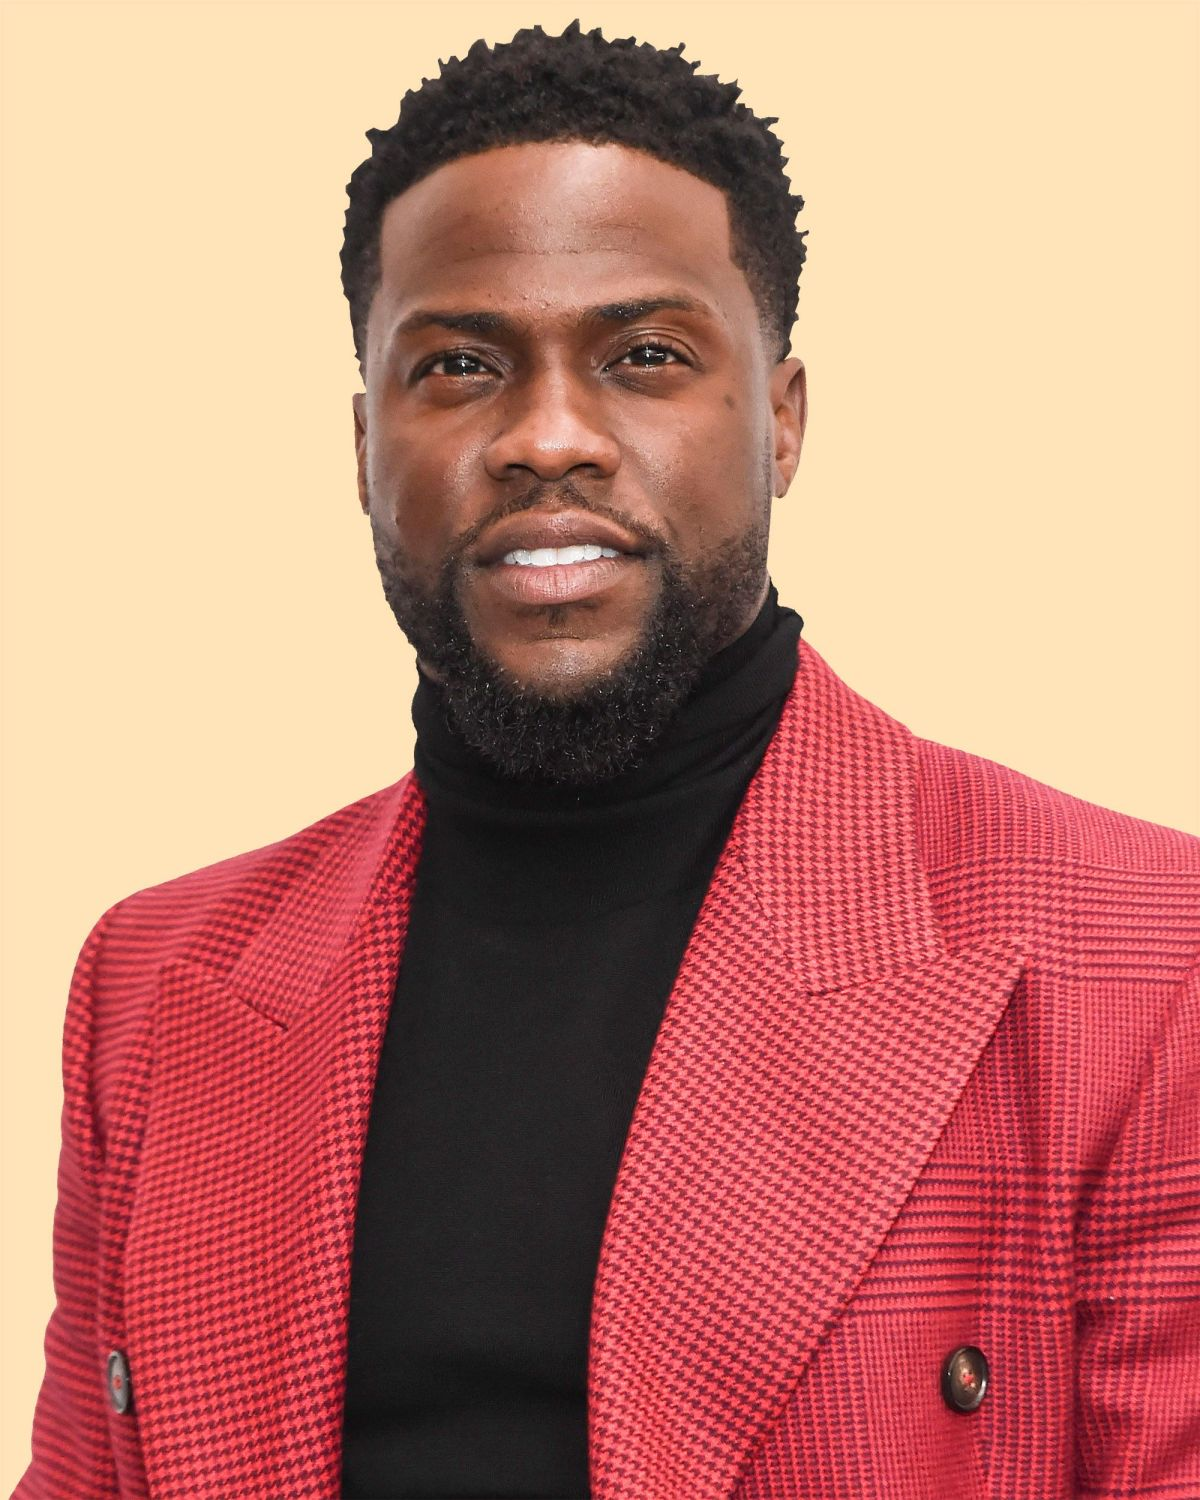 Kevin Hart Biography and Net Worth